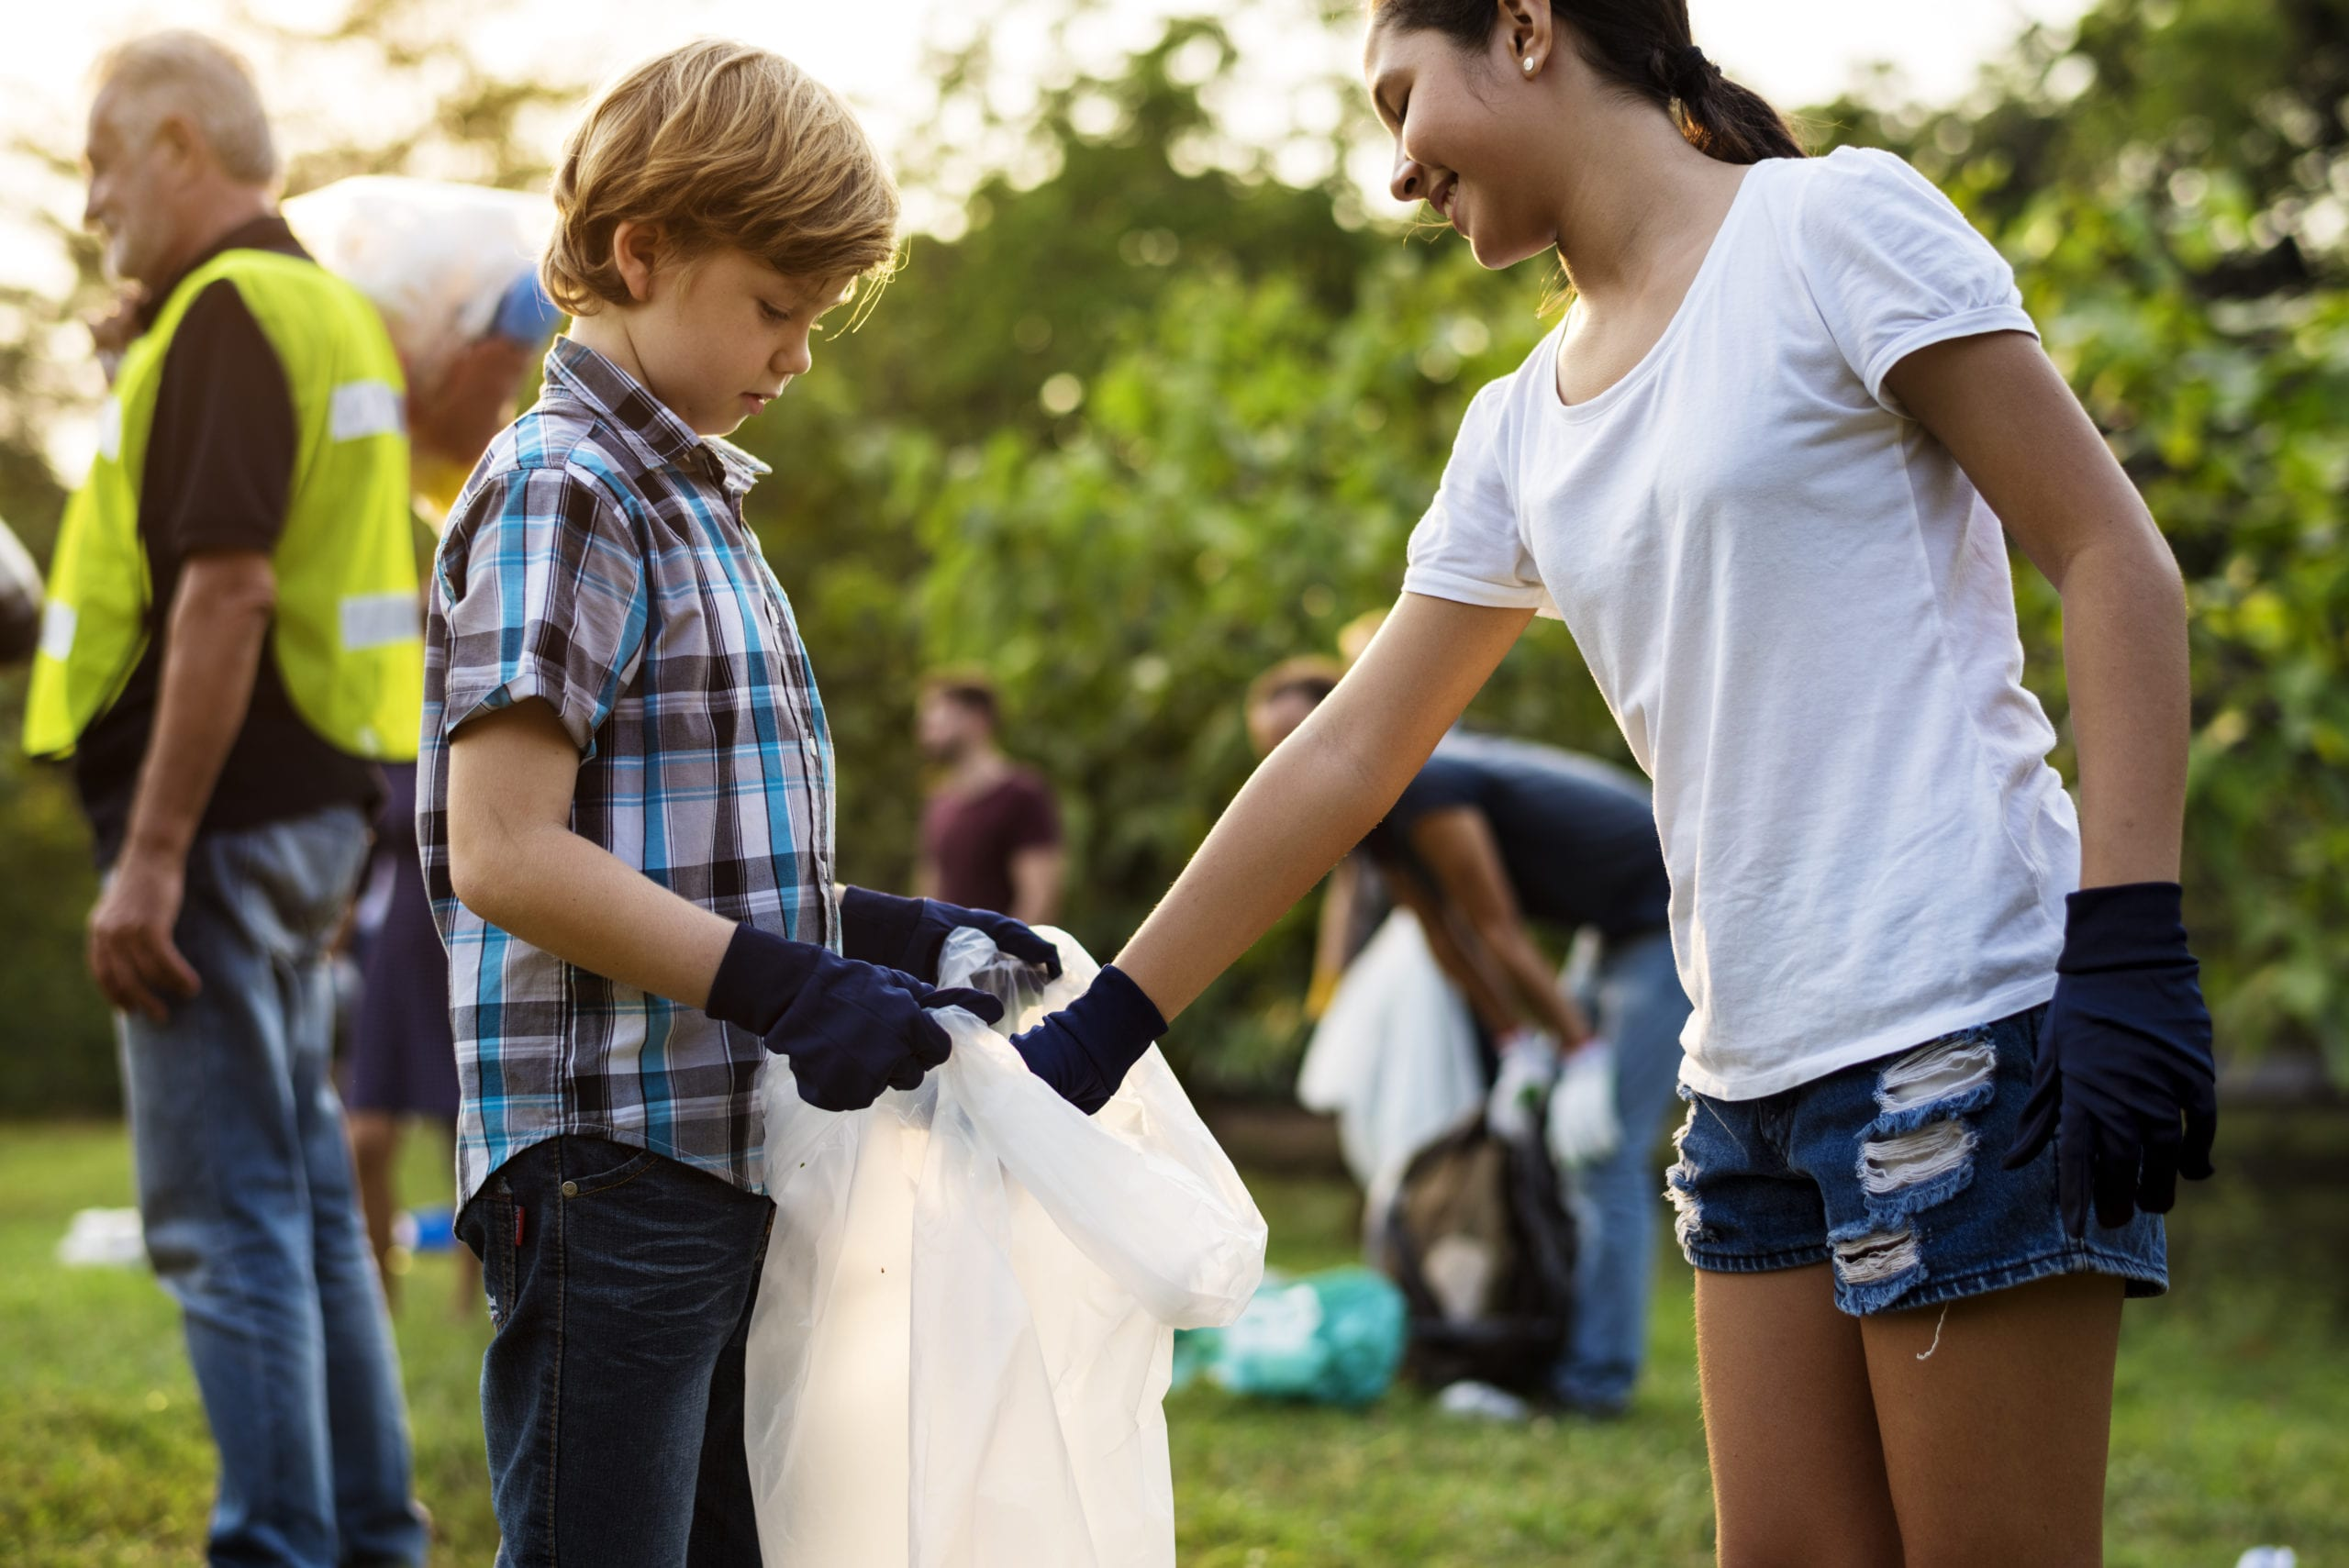 nonprofit organization event kids pickup trash